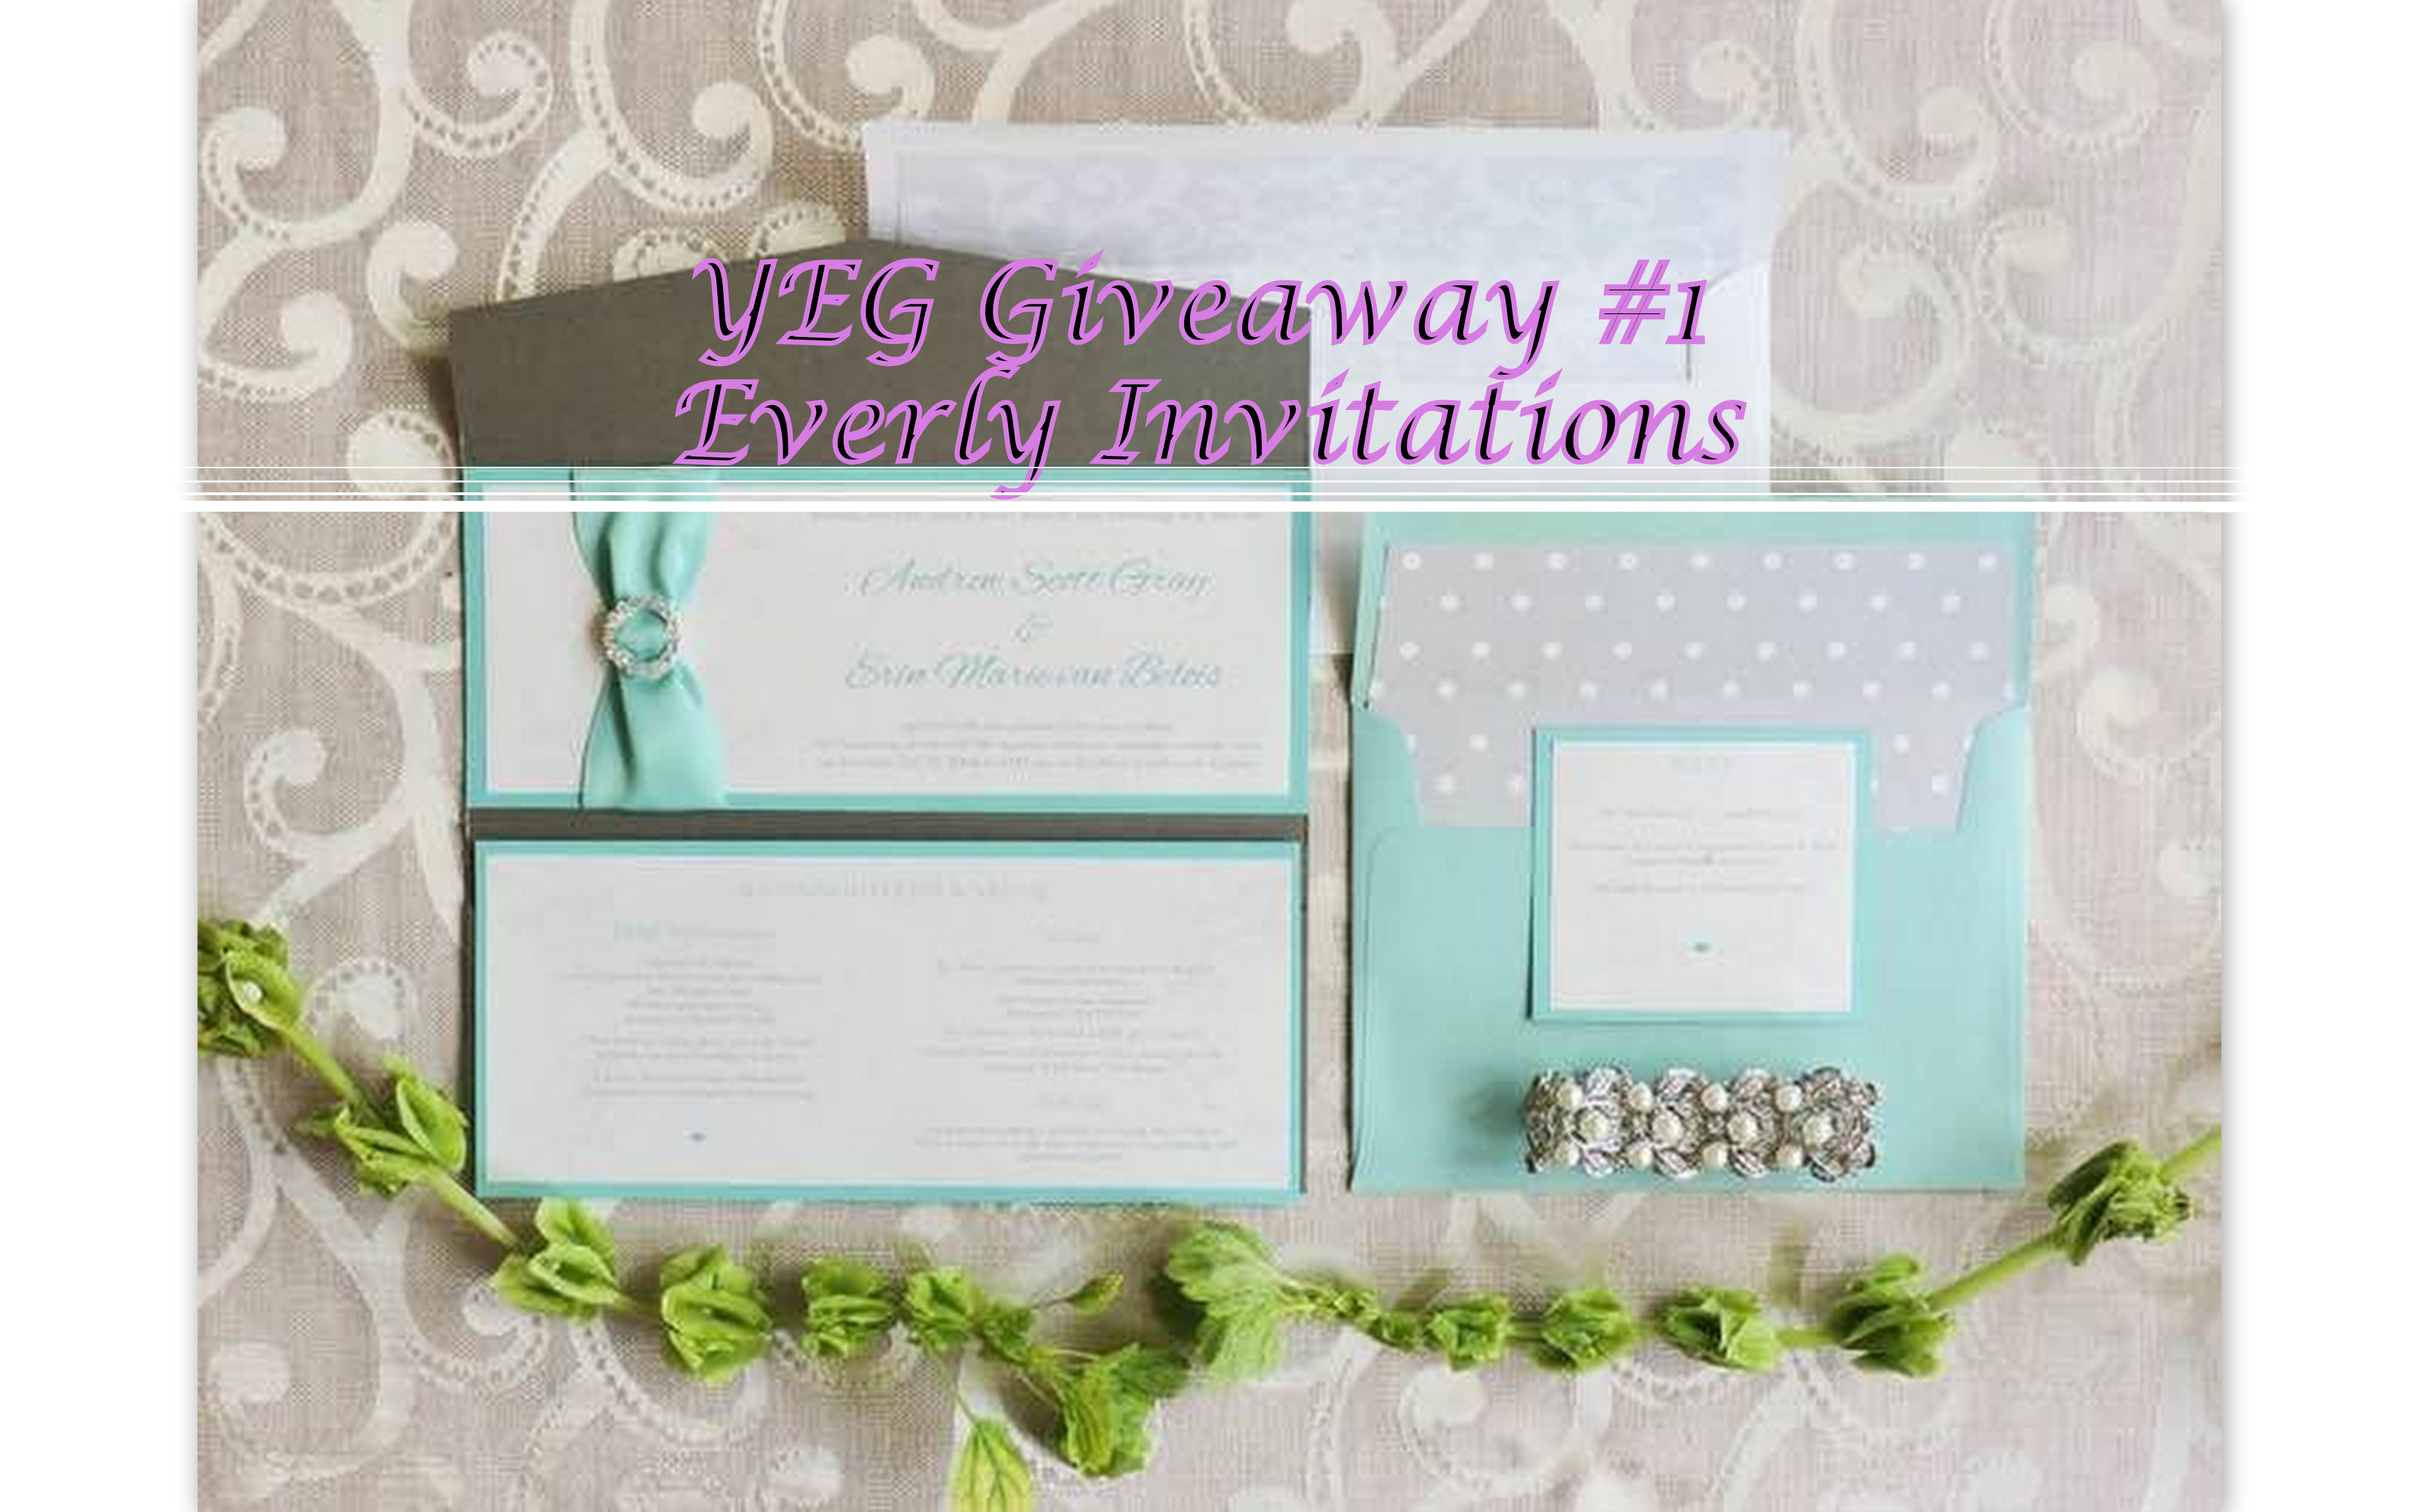 everly invitations edmonton Archives - InVogue Weddings and Events